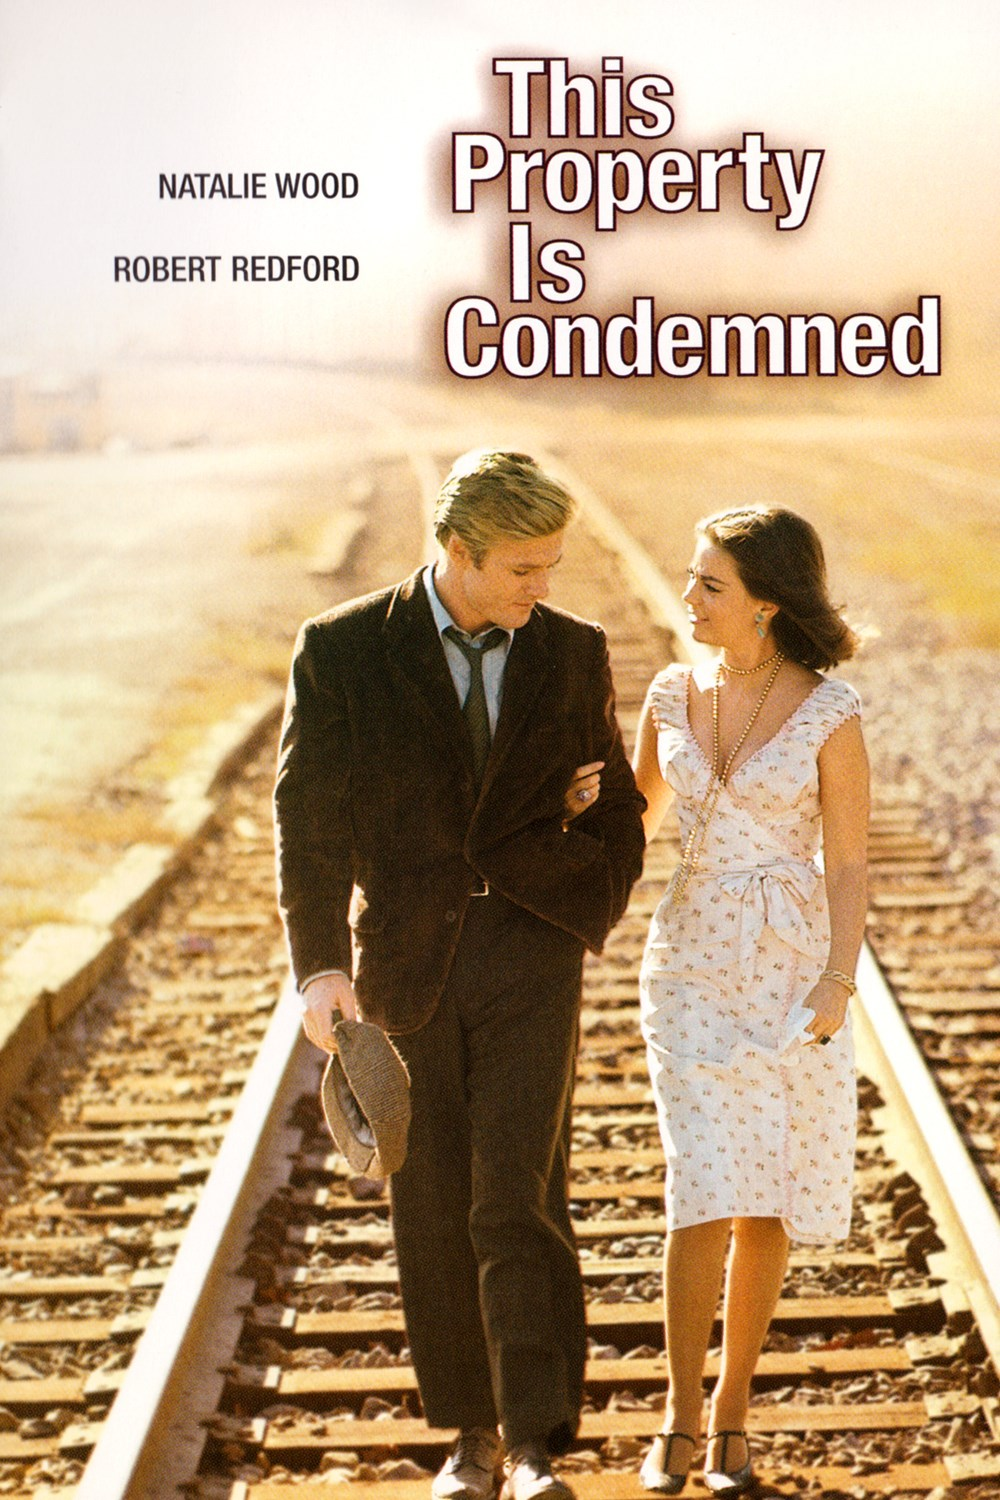 Subscene - This Property Is Condemned English subtitle